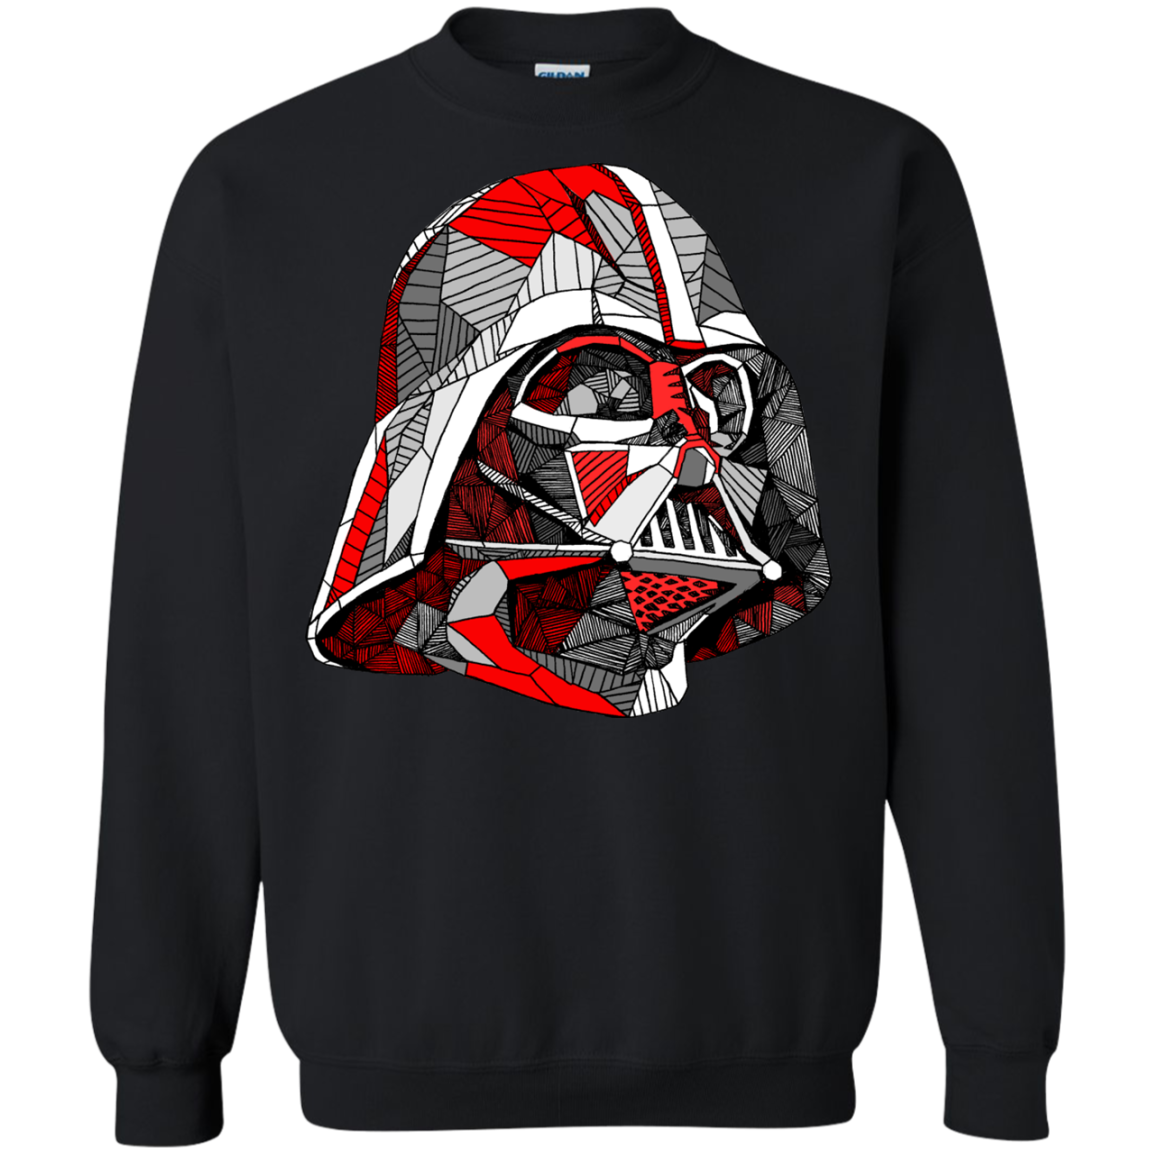 Abstract Vader Star Wars Shop Gifts T Shirts Hoodies Sweatshirts Tank Top - The Sun Cat